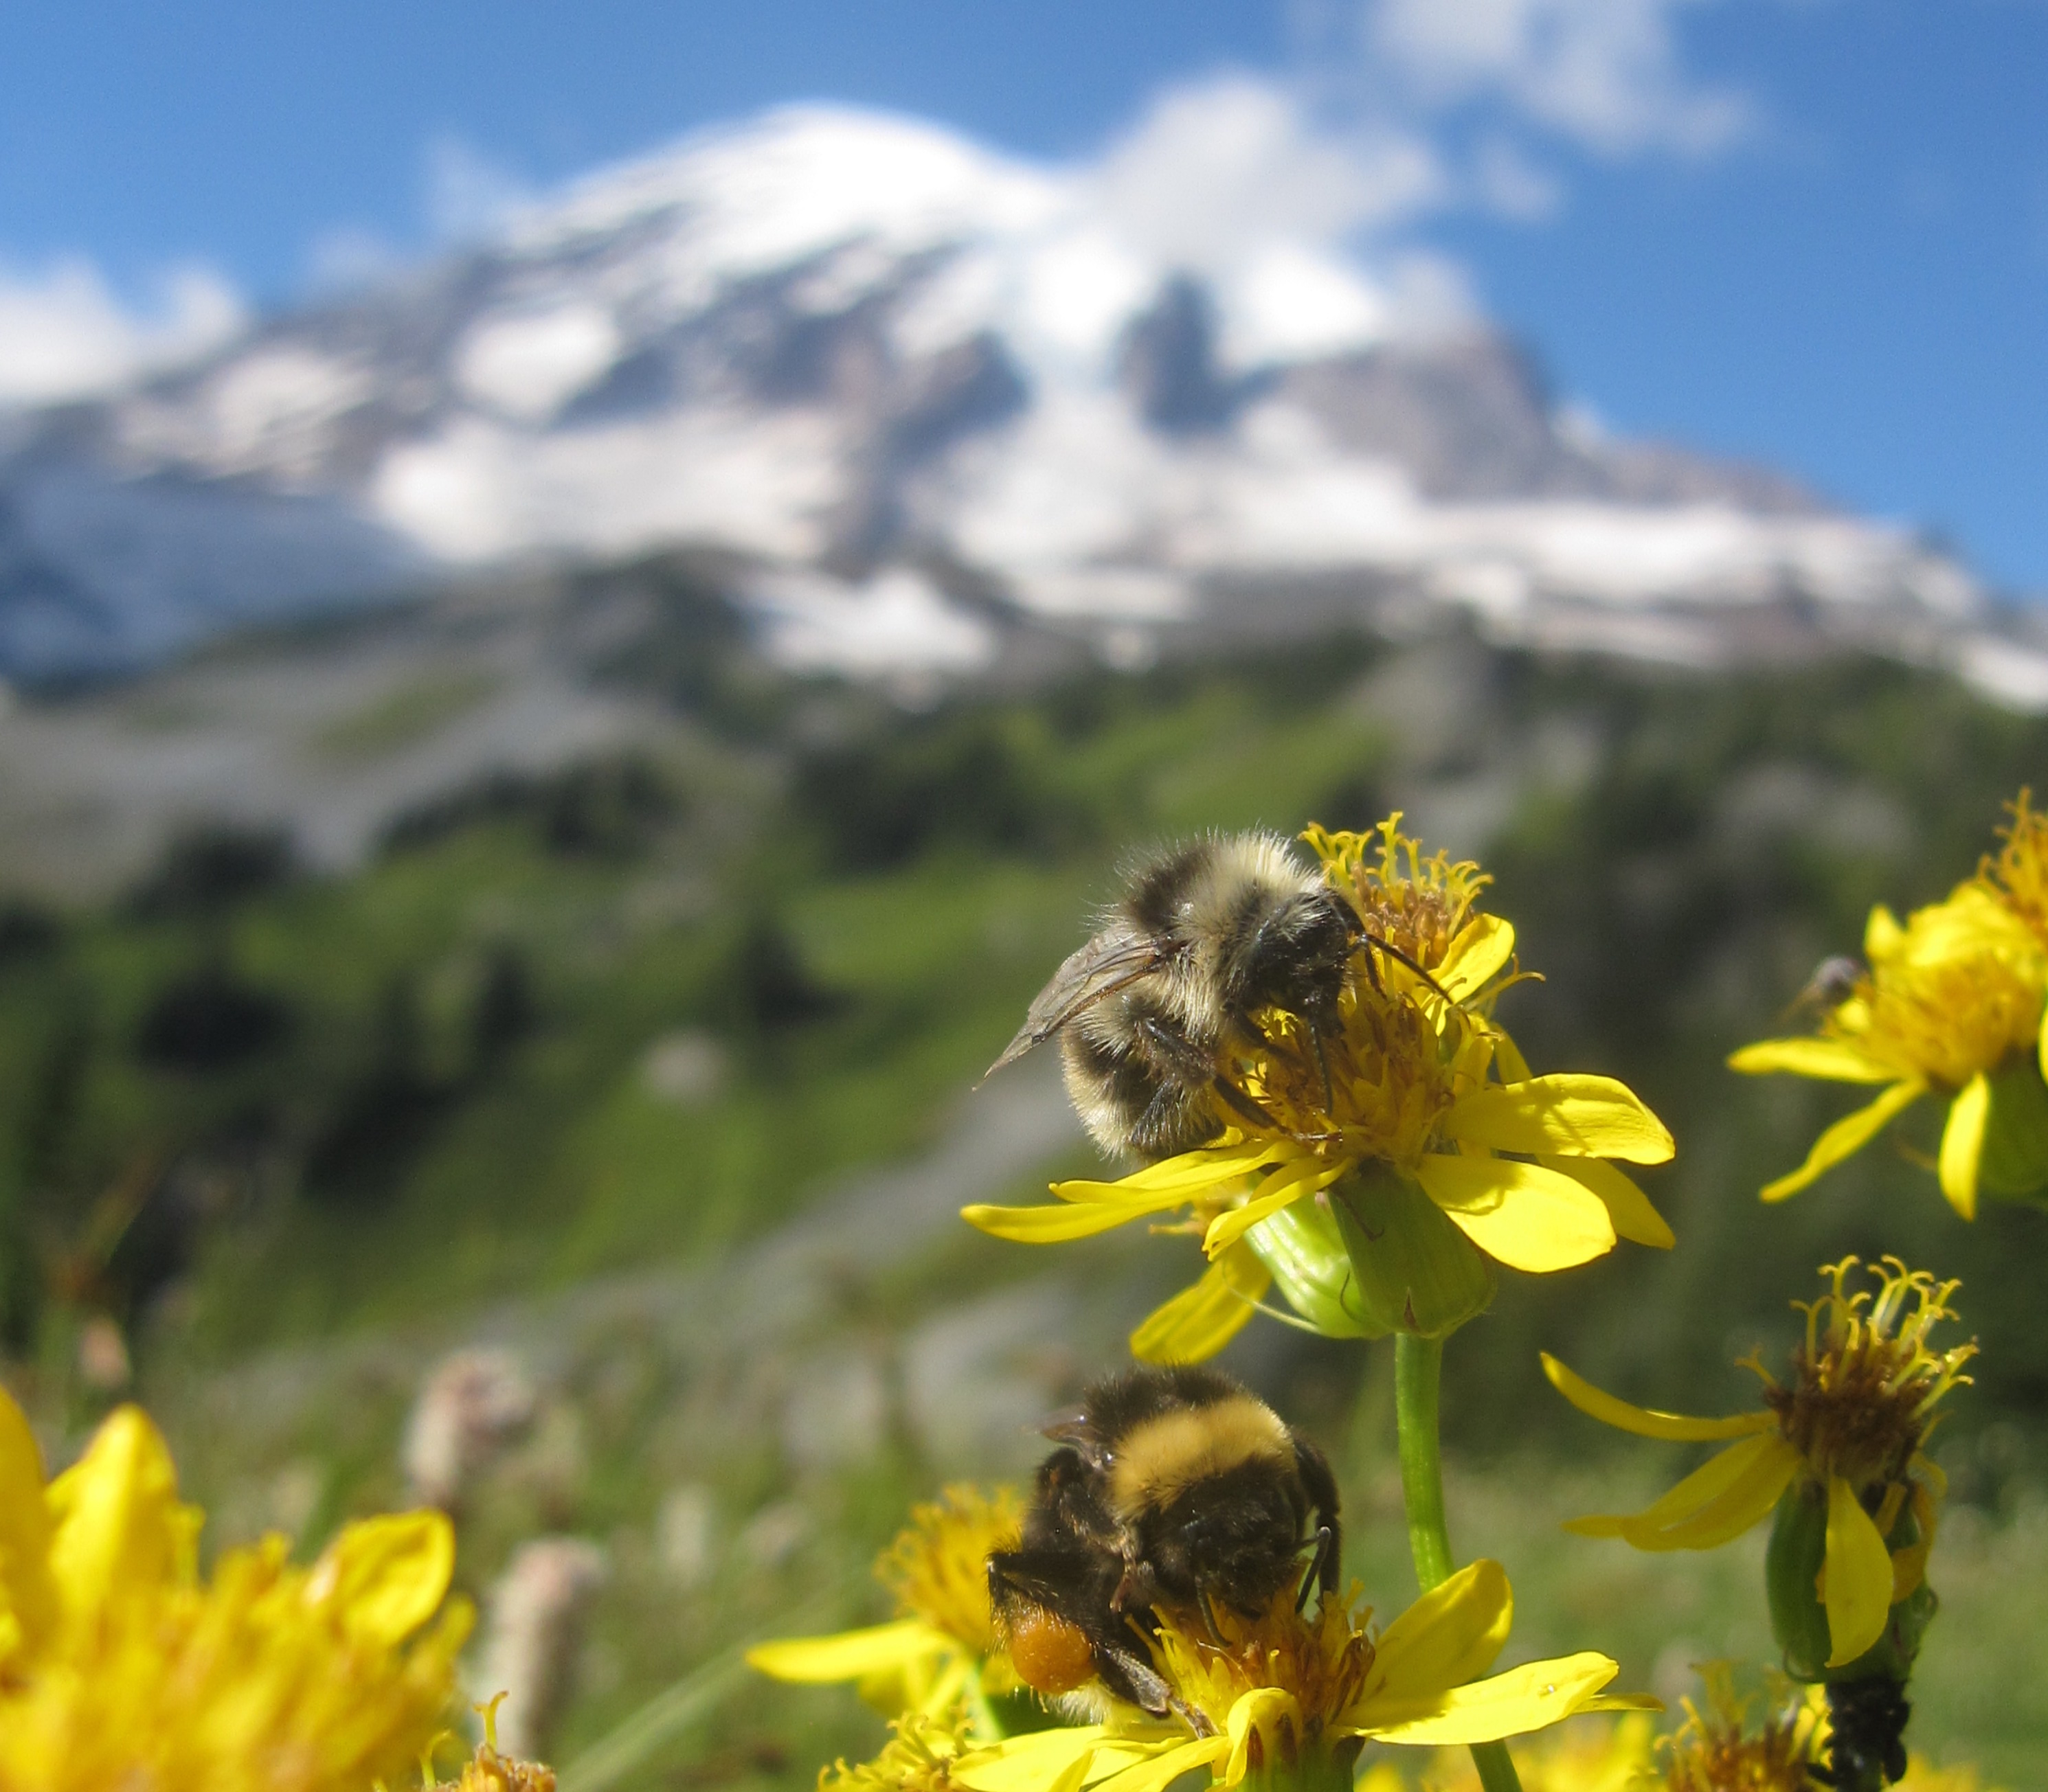 Today's Video of the Day comes from the University of Washington and features a look at how climate change is already impacting wildflowers.